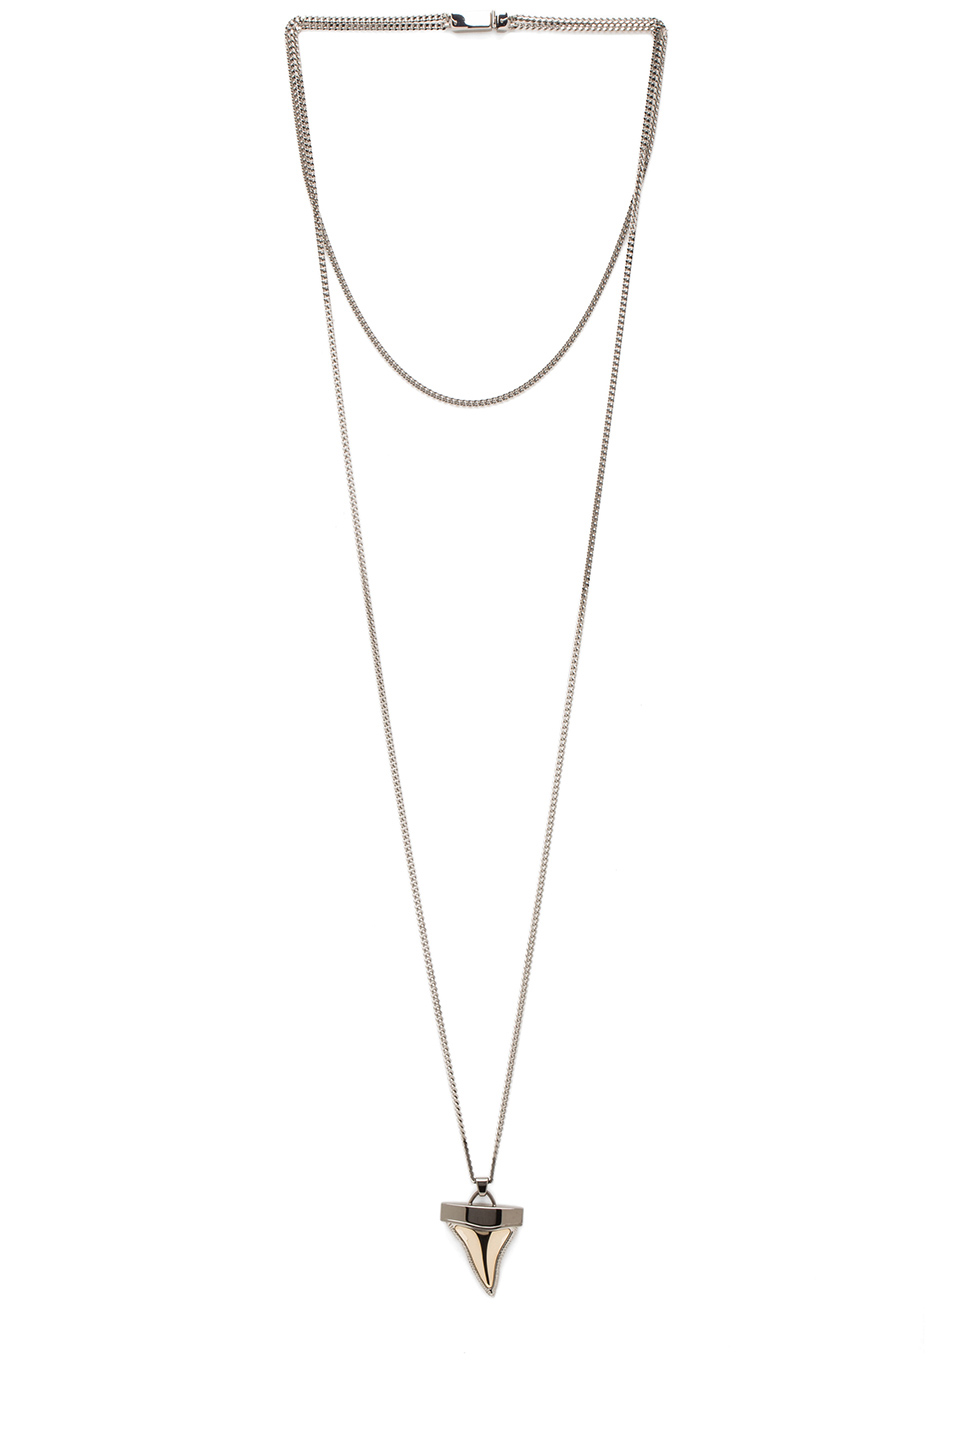 GIVENCHY | Small Metal Shark Tooth Necklace in Silver & Gold